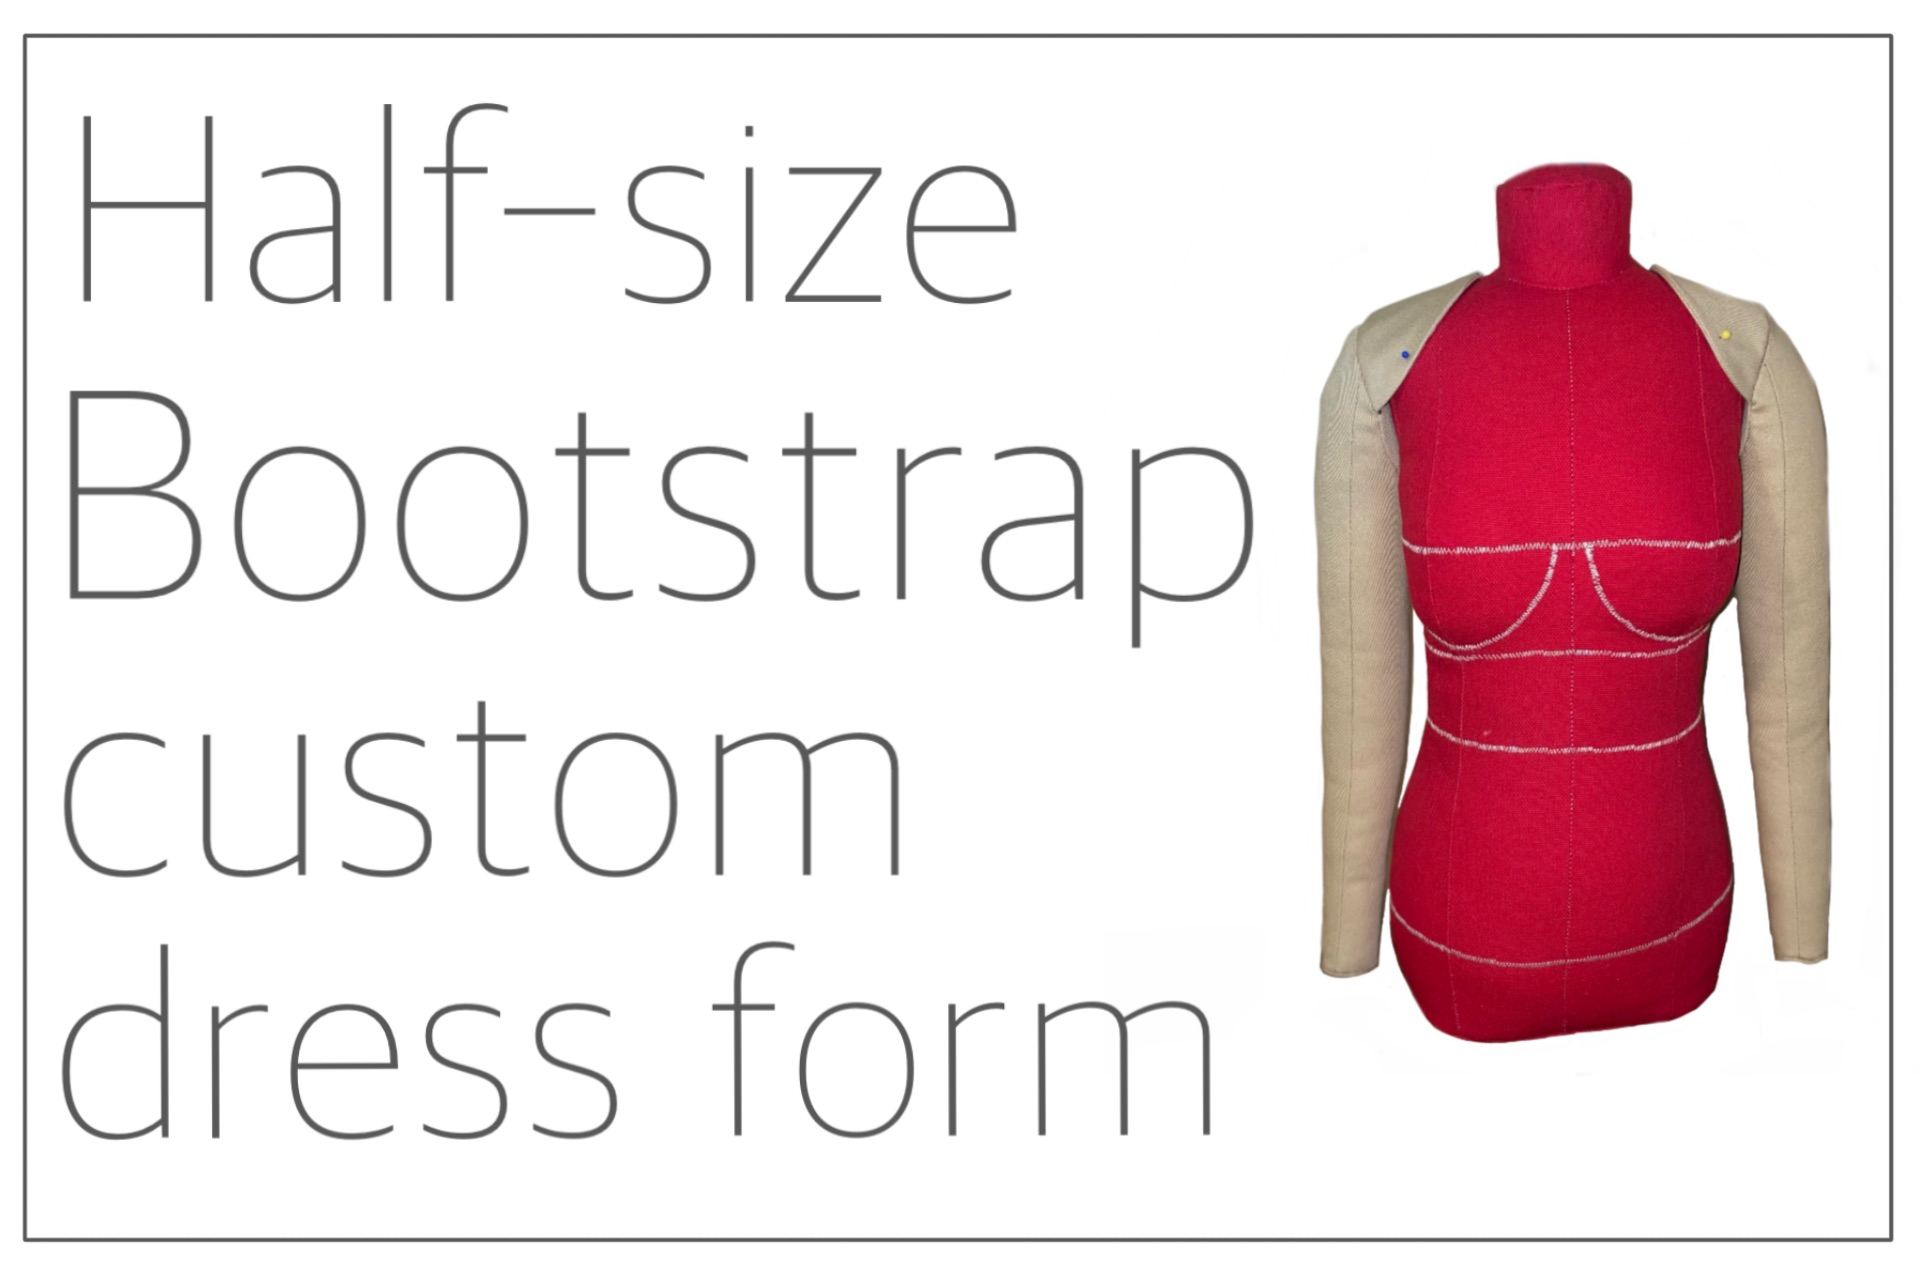 You are currently viewing Half-size Bootstrap custom dress form